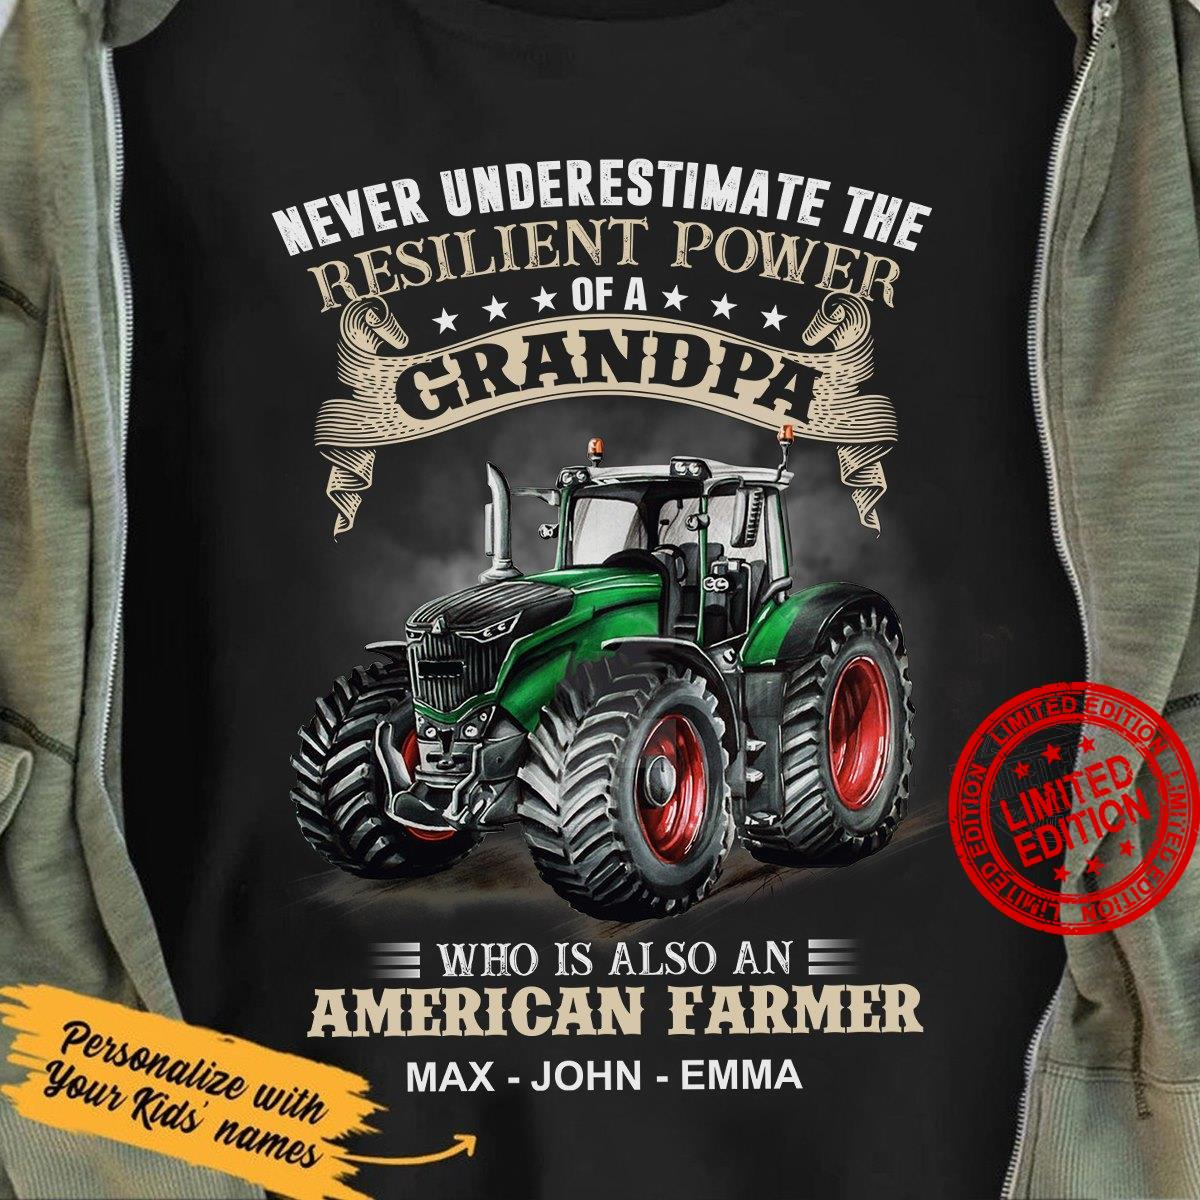 Never Underestimate The Resilient Power Of A Grandpa Shirt